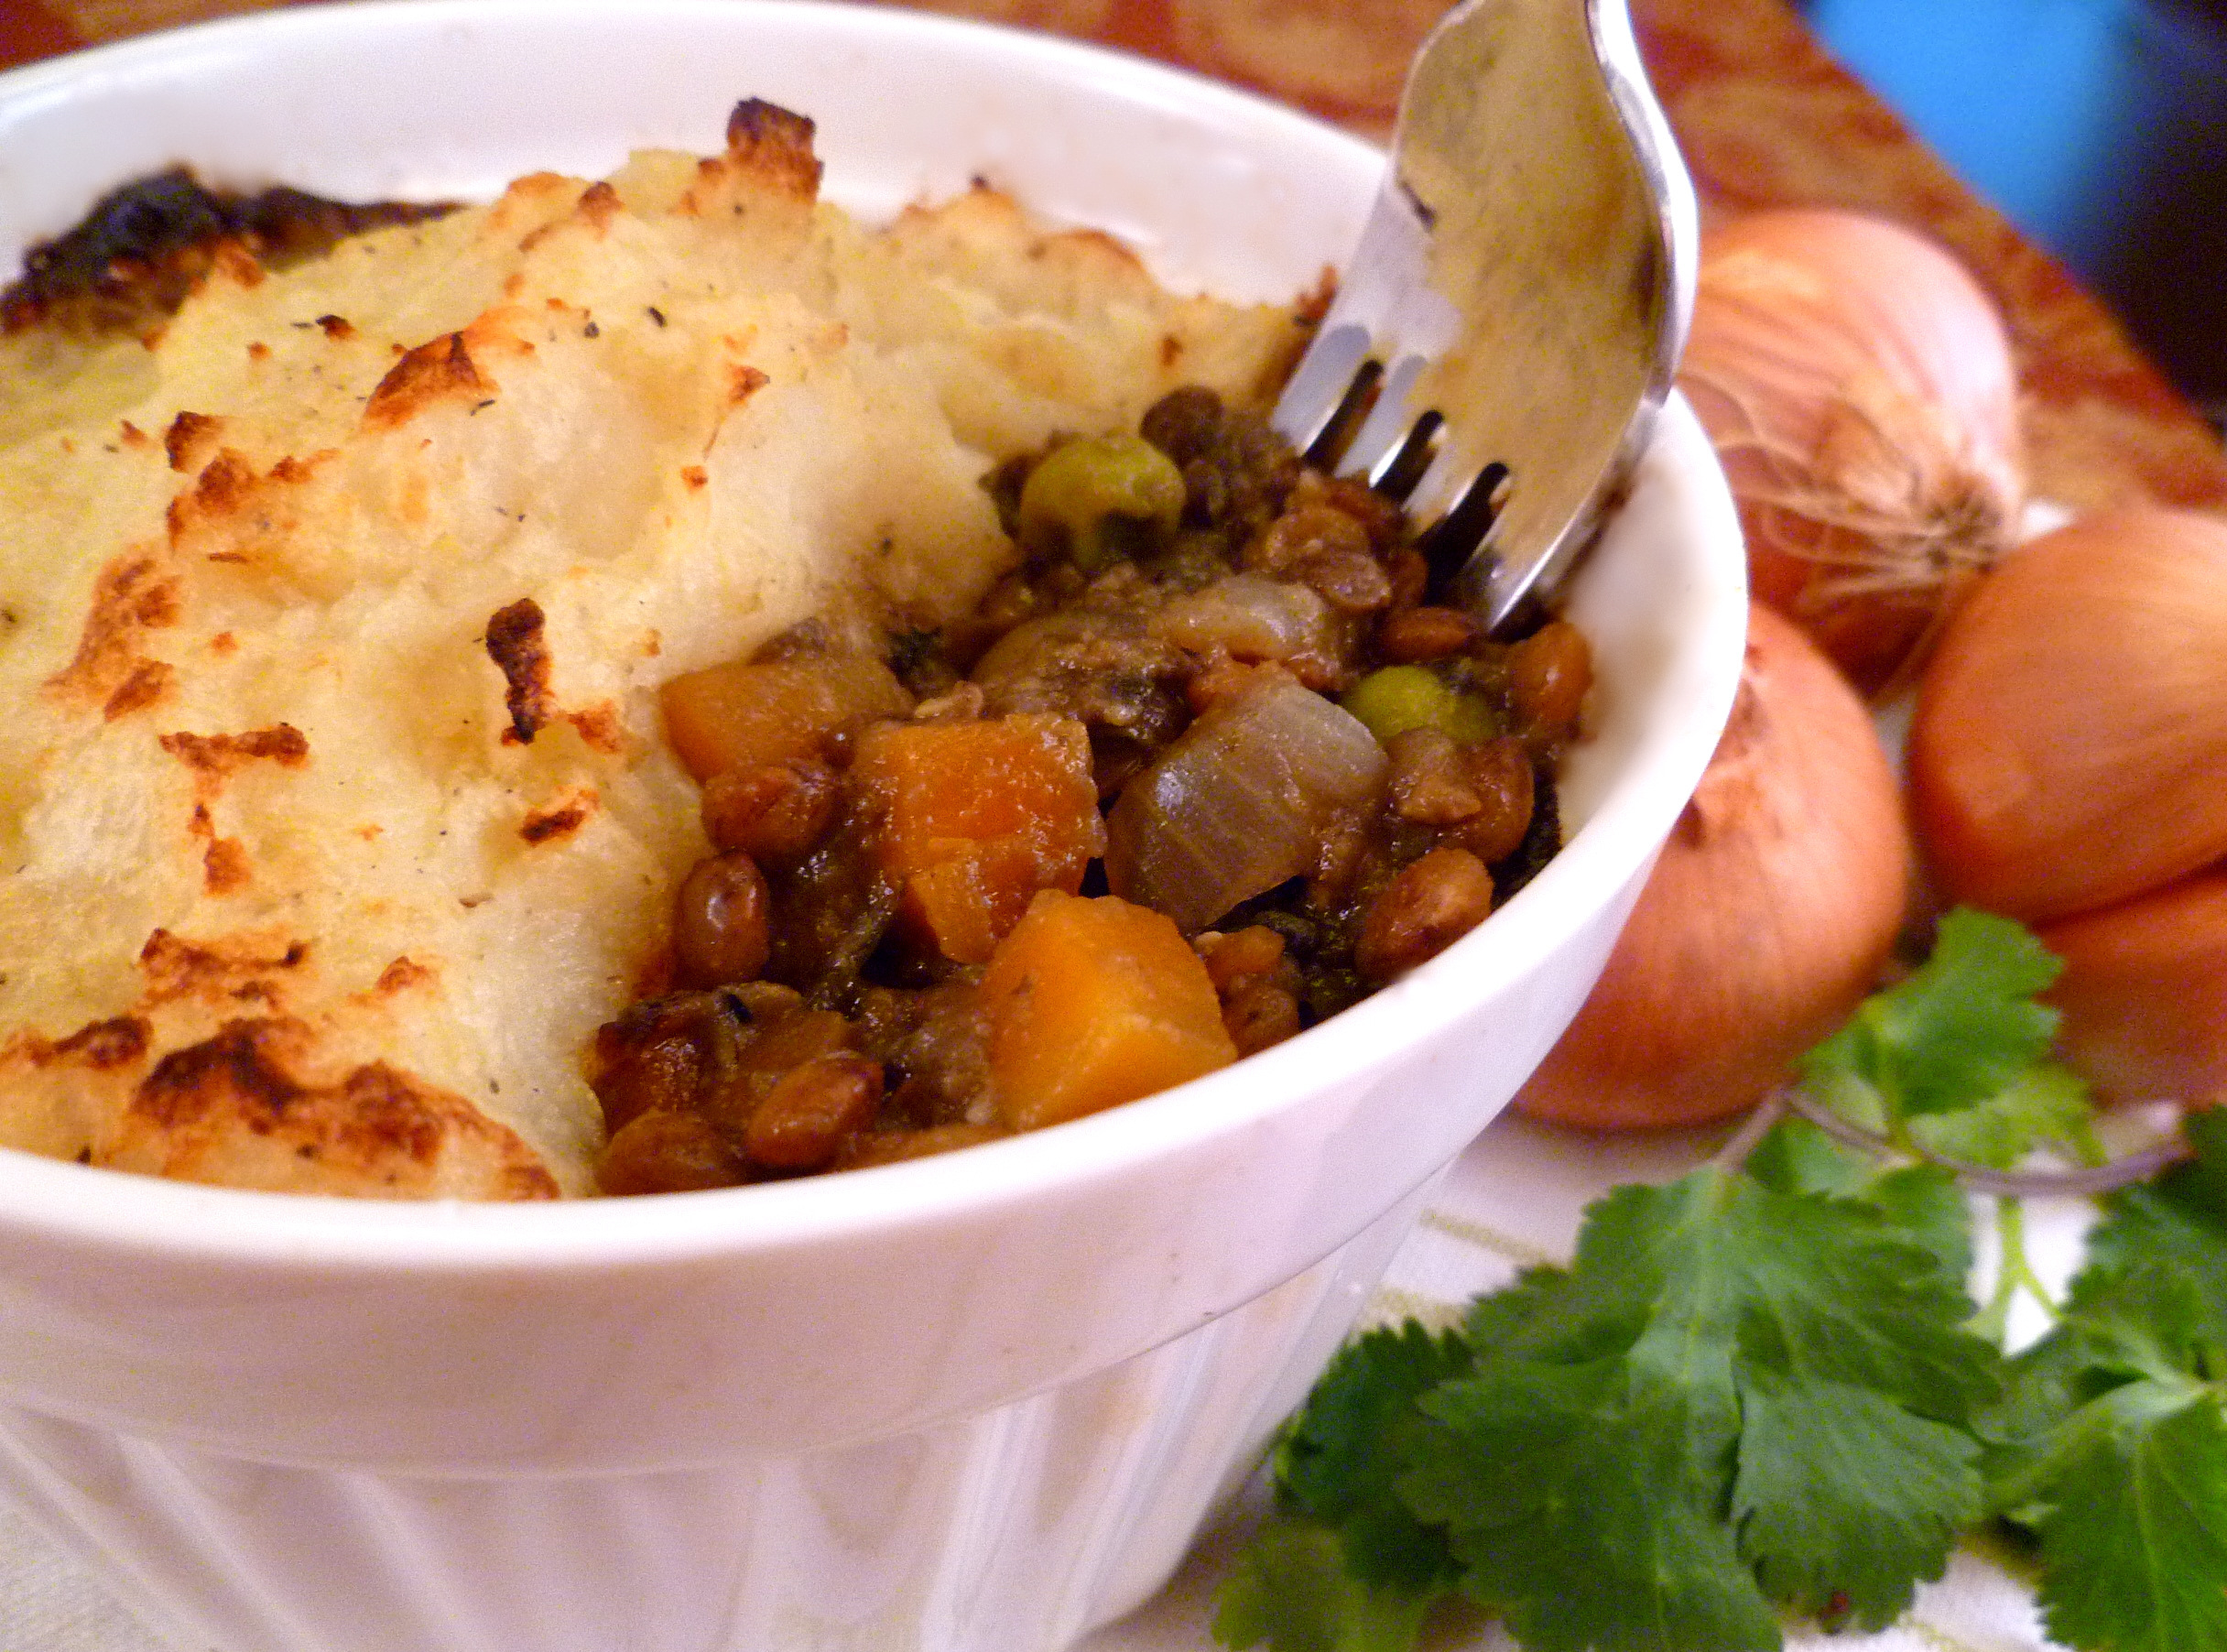 https://voguevegetarian.files.wordpress.com/2011/12/shepherds-pie1.jpg